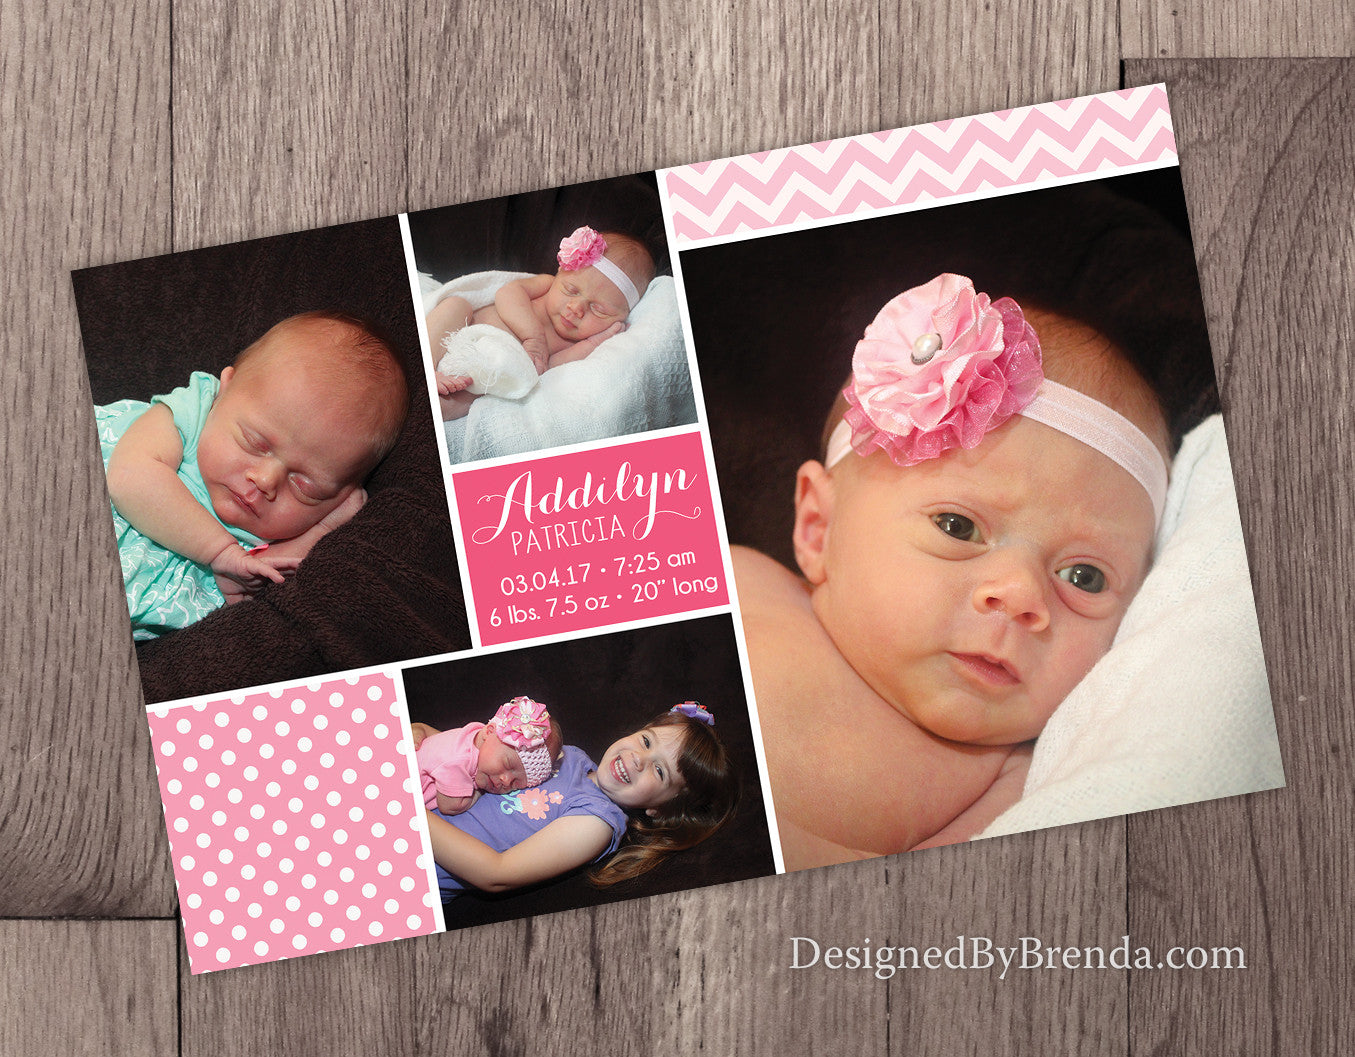 Baby Announcement Card with Custom Photo Collage - Pink Chevron & Polka Dots